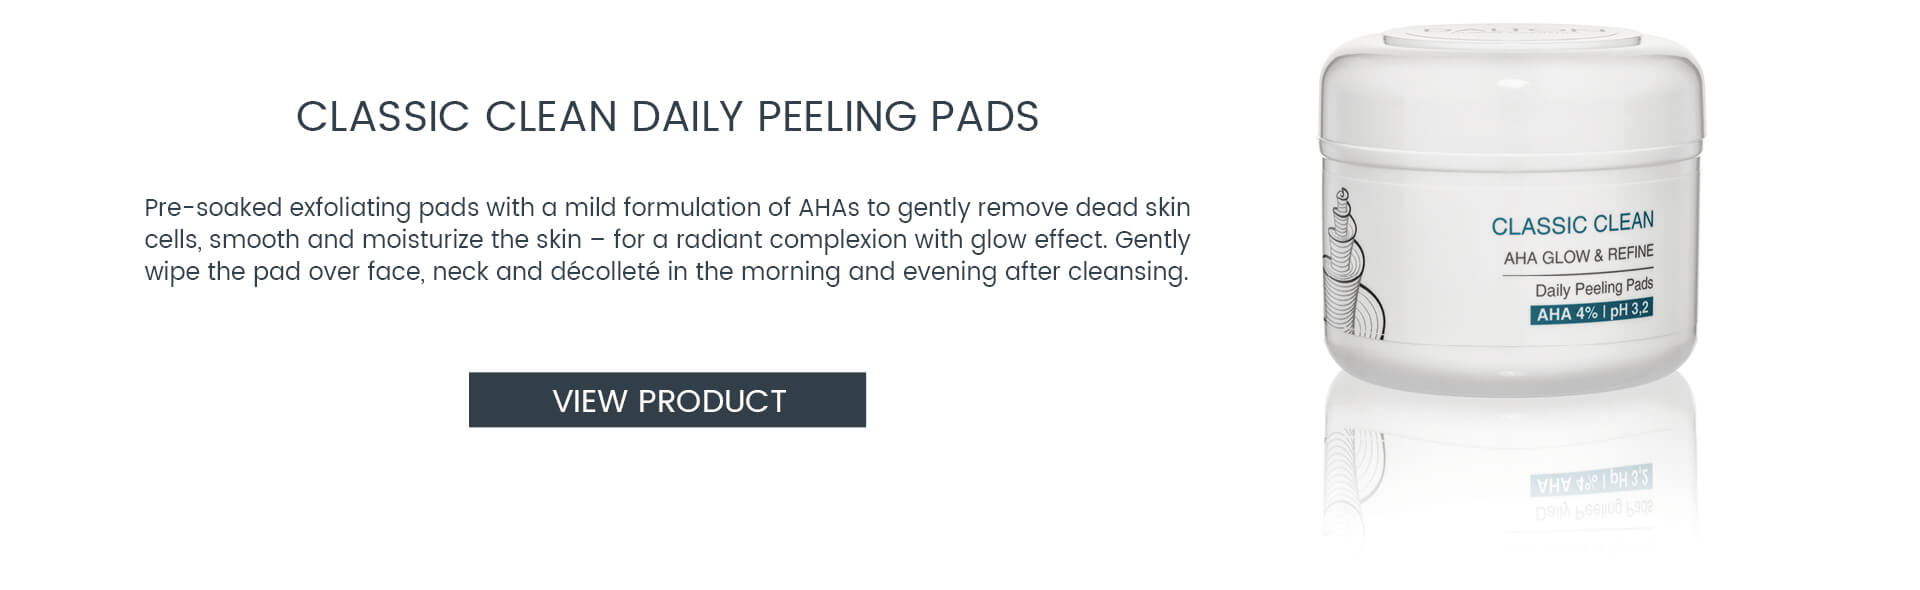 AHA Peeling Pads – Gentle AHA products for at-home use